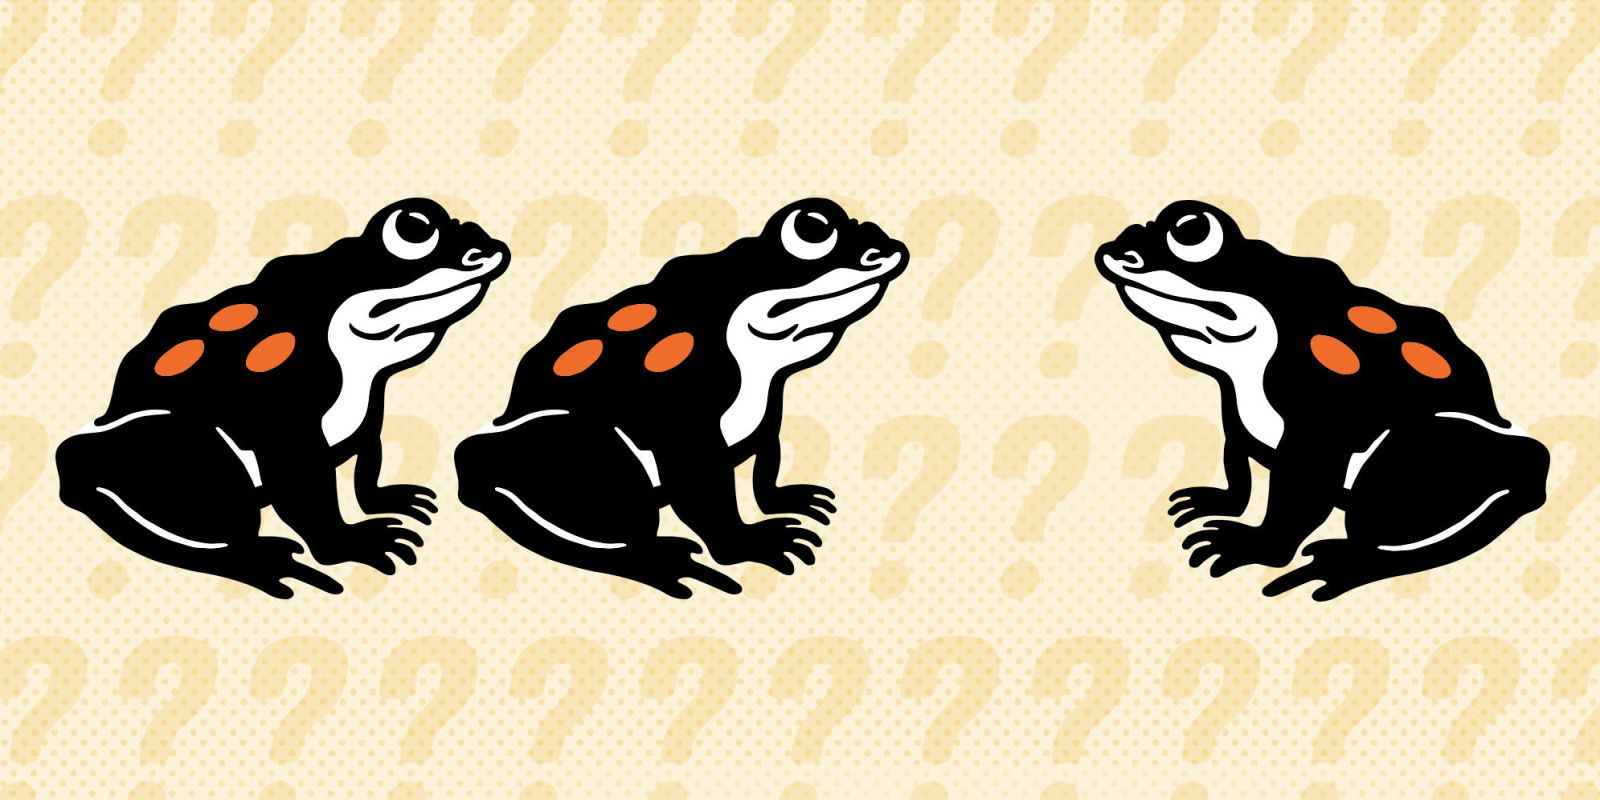 Solution to Riddle of the Week #12: Licking Frogs